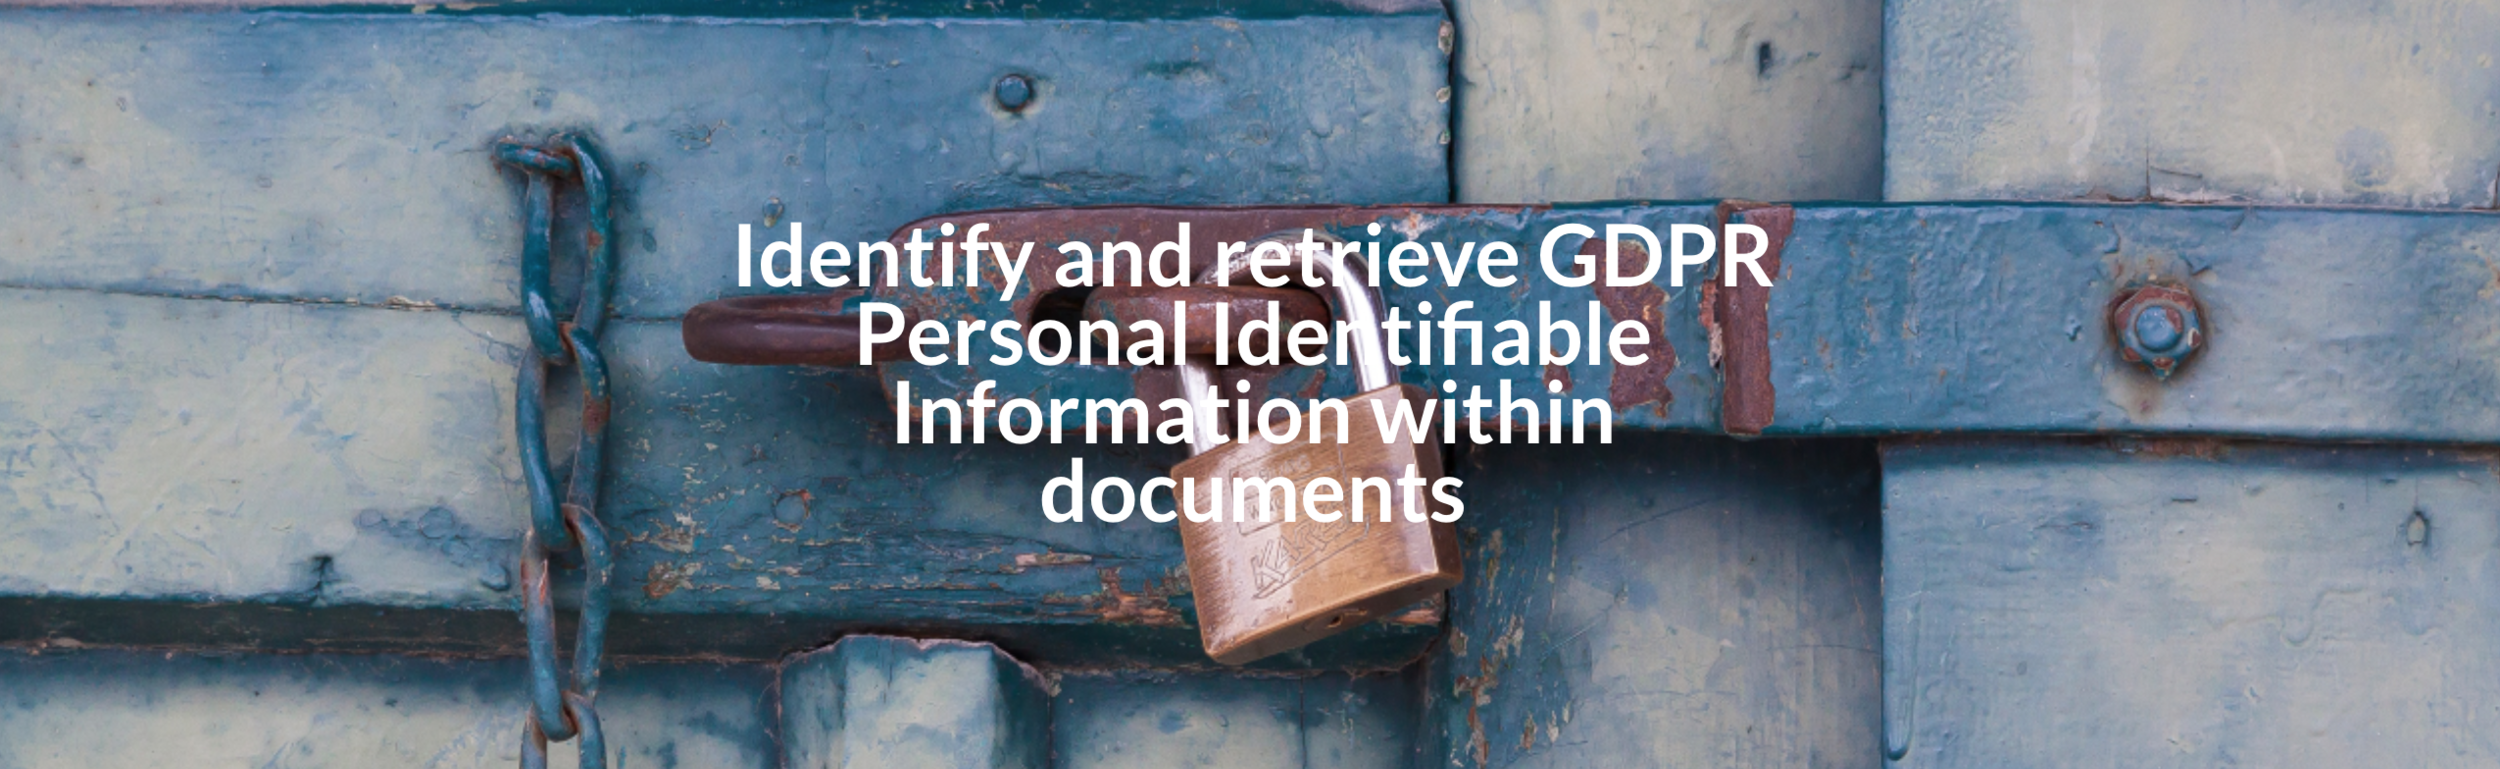 GDPR Identify and retrieve